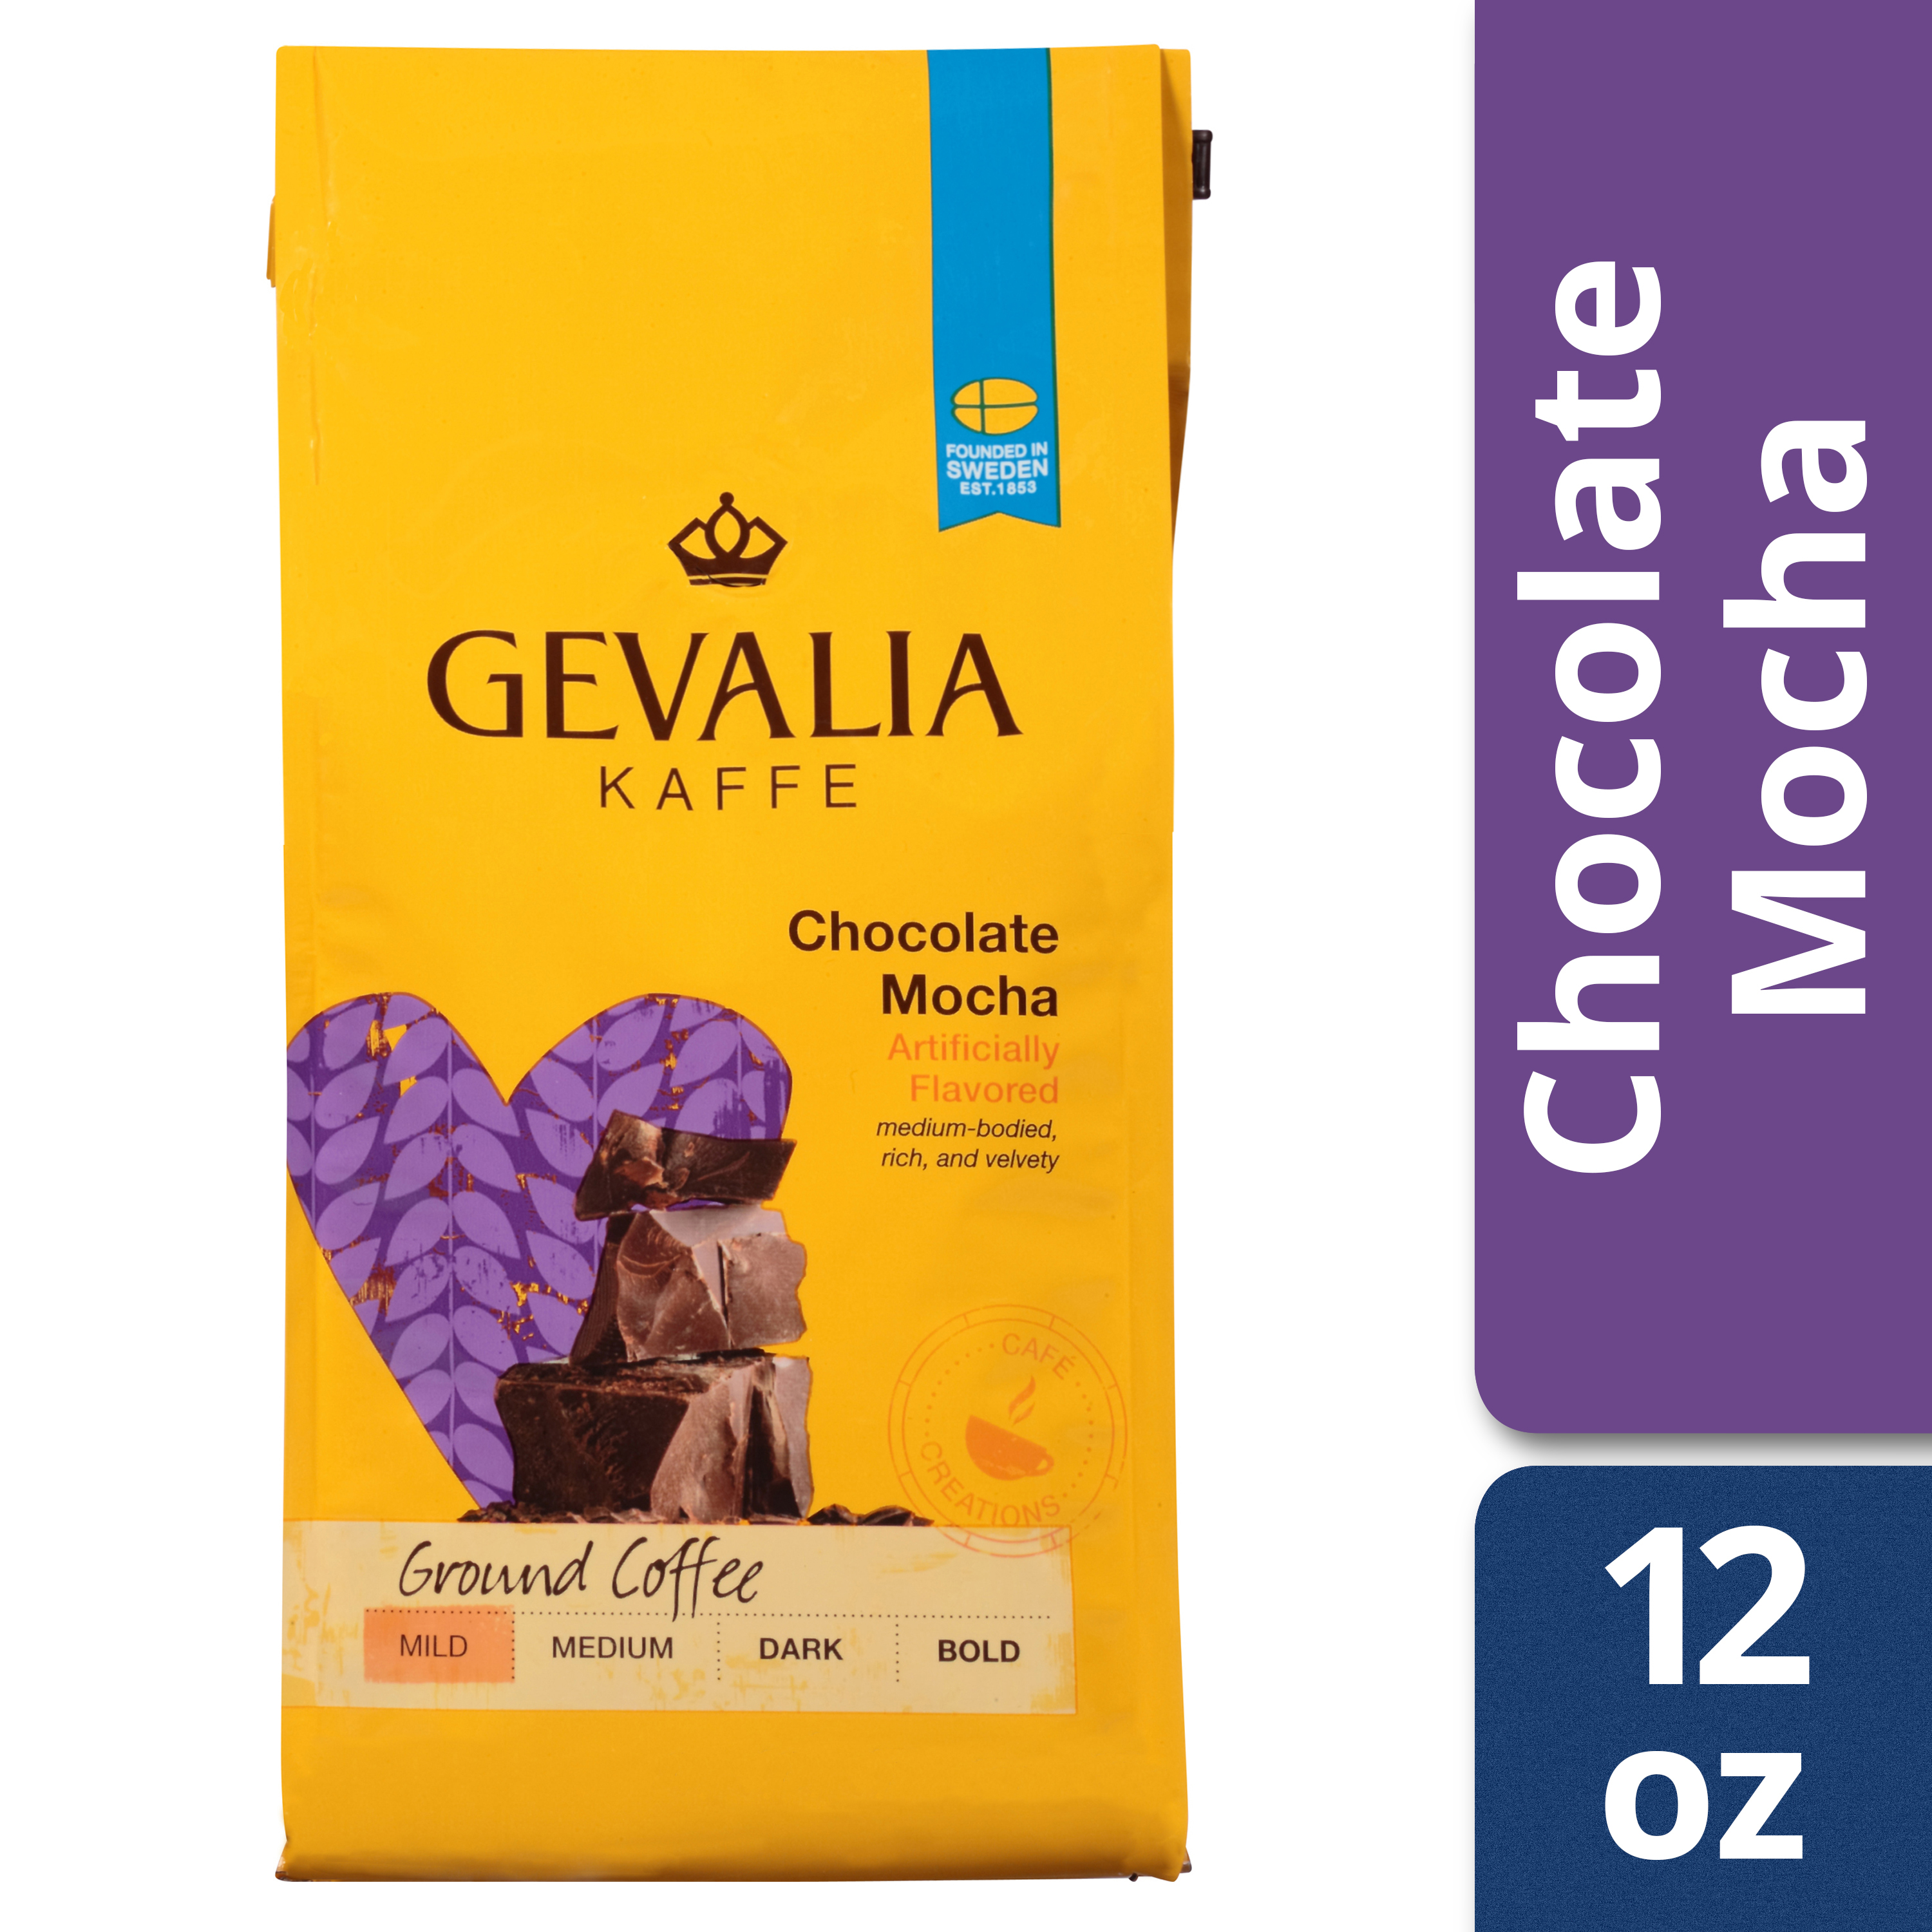 Gevalia Chocolate Mocha Ground Coffee, 12 oz Bag